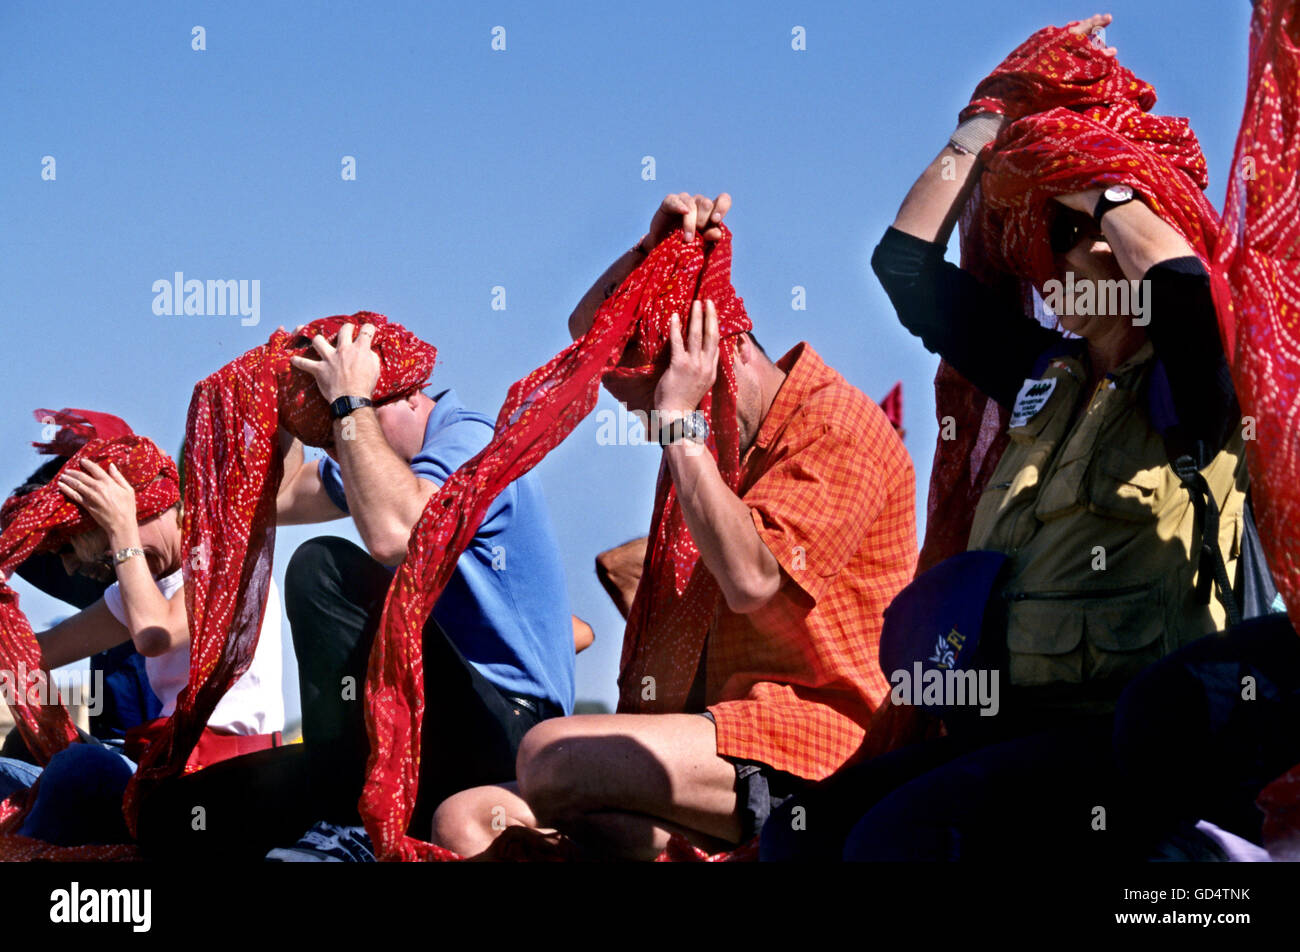 Foreigners in a turban tying competition - Stock Image